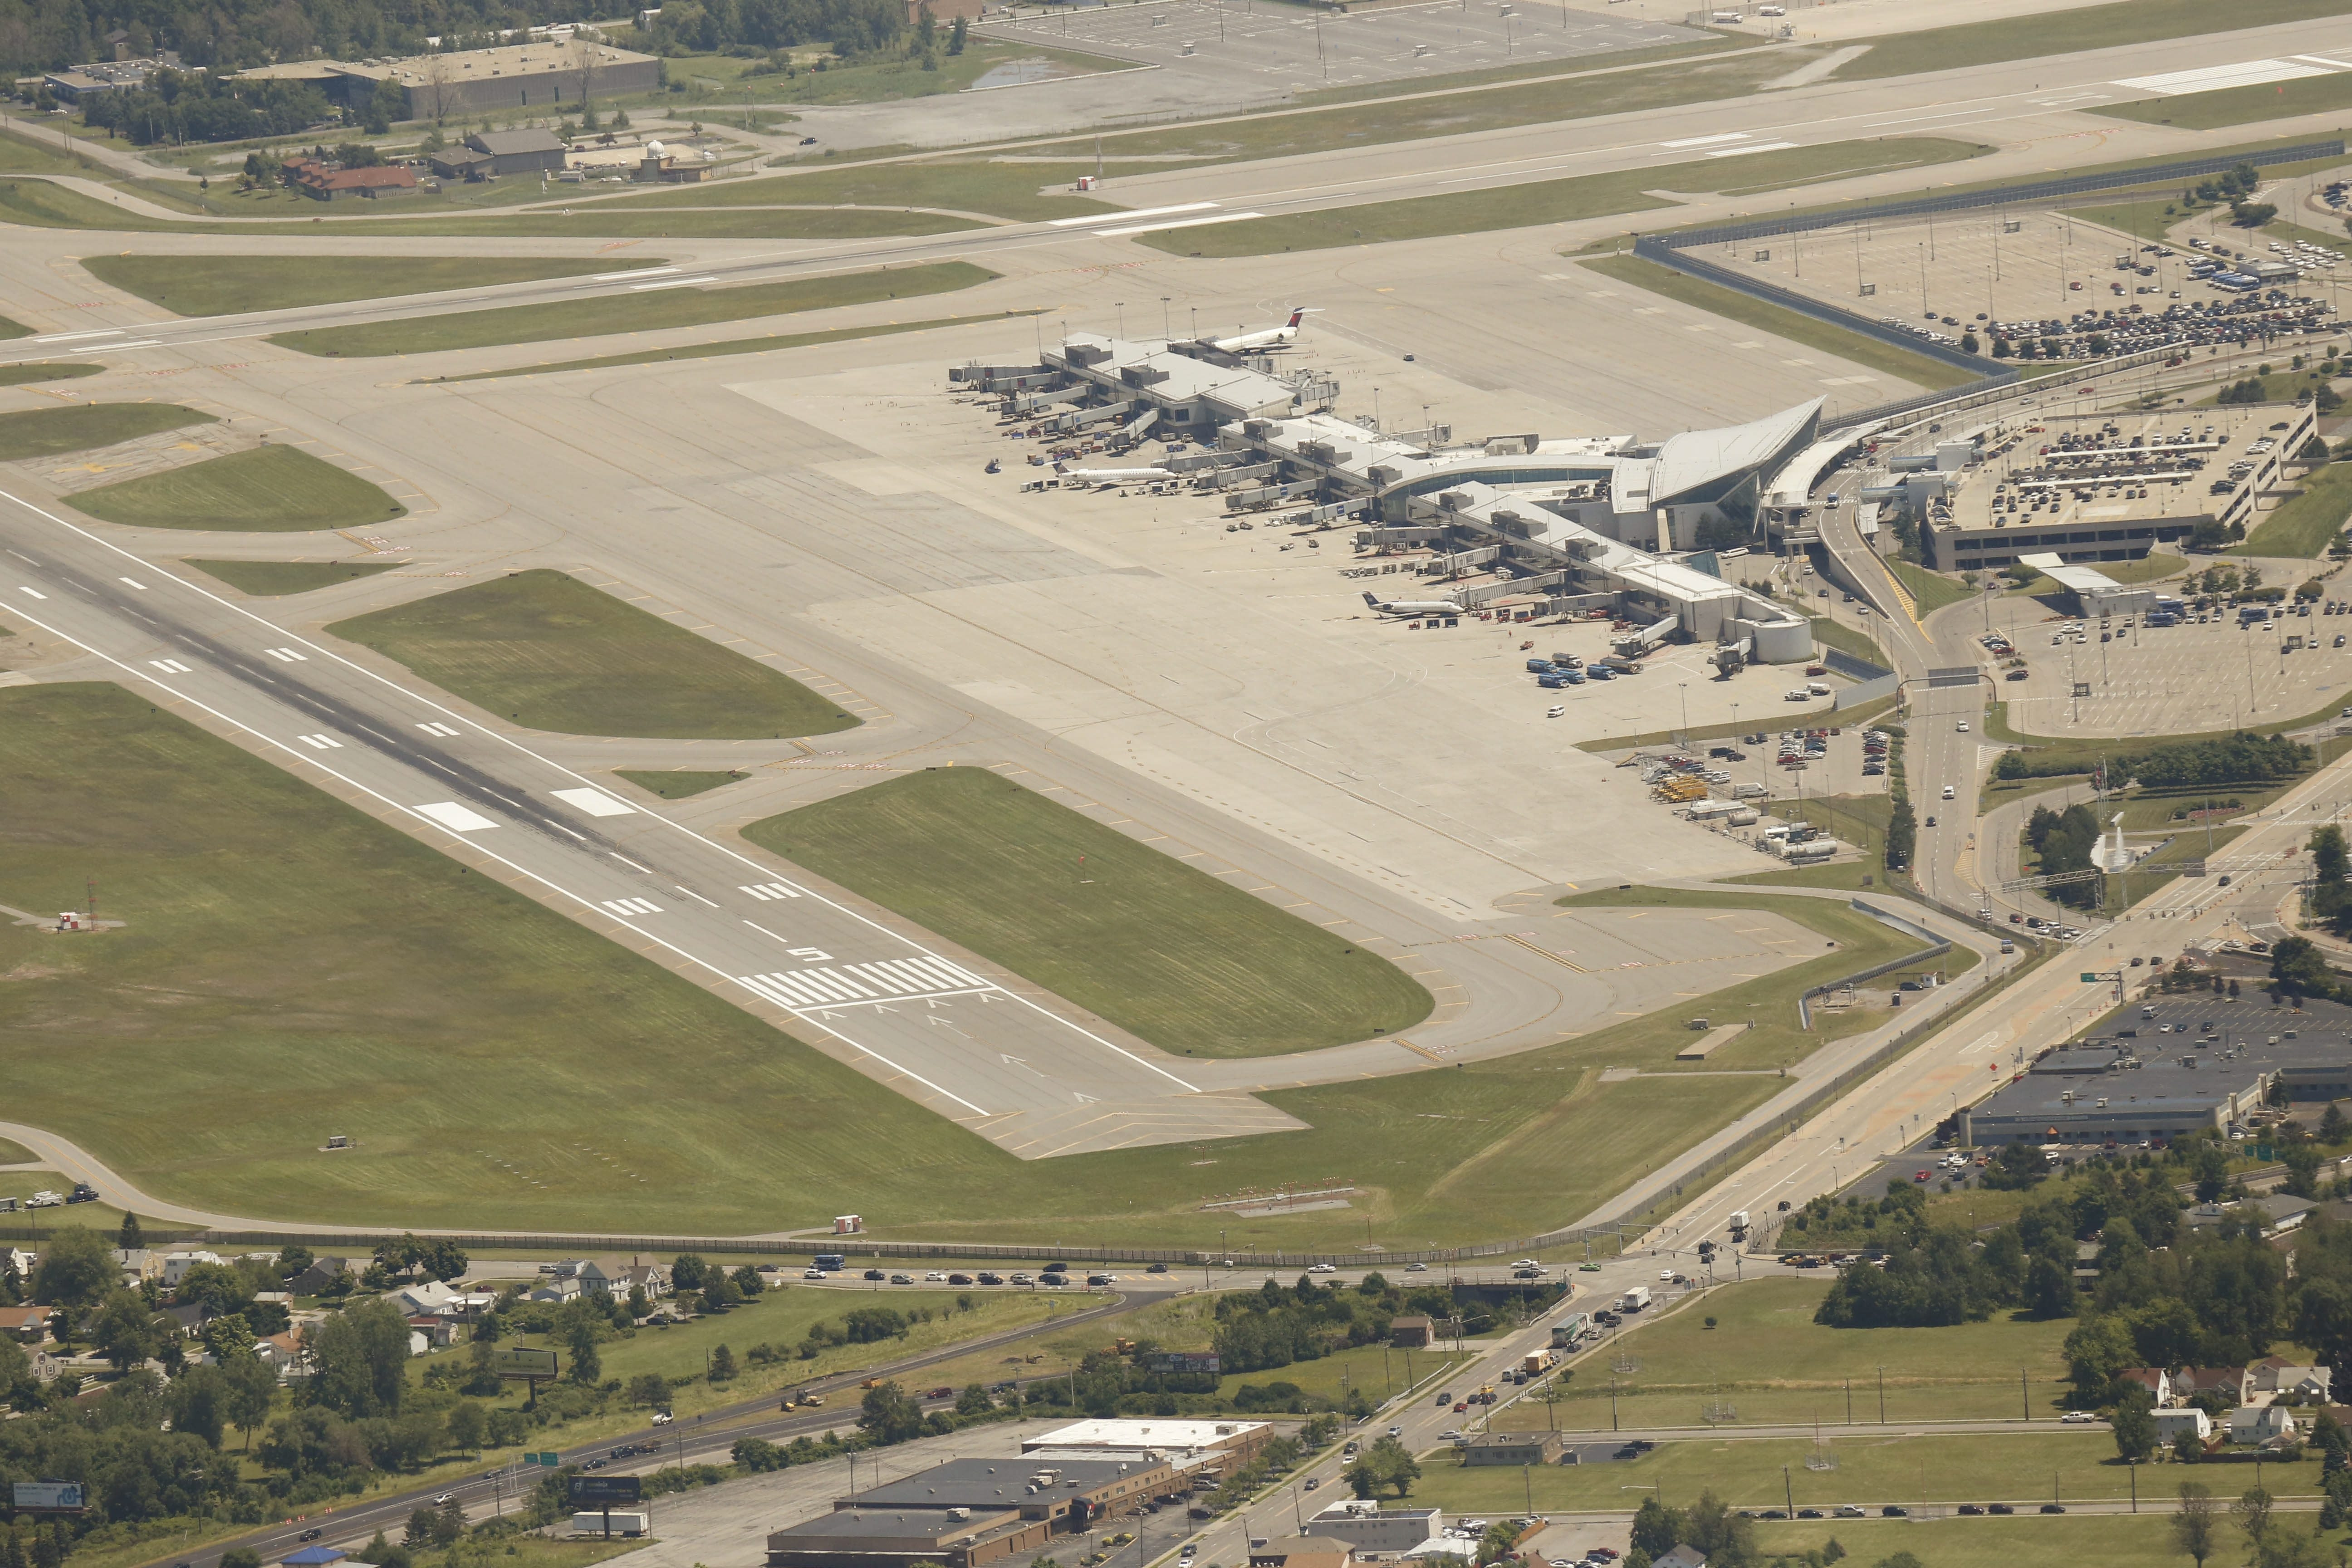 A aerial view of Buffalo Niagara International Airport is shown from July 2014.